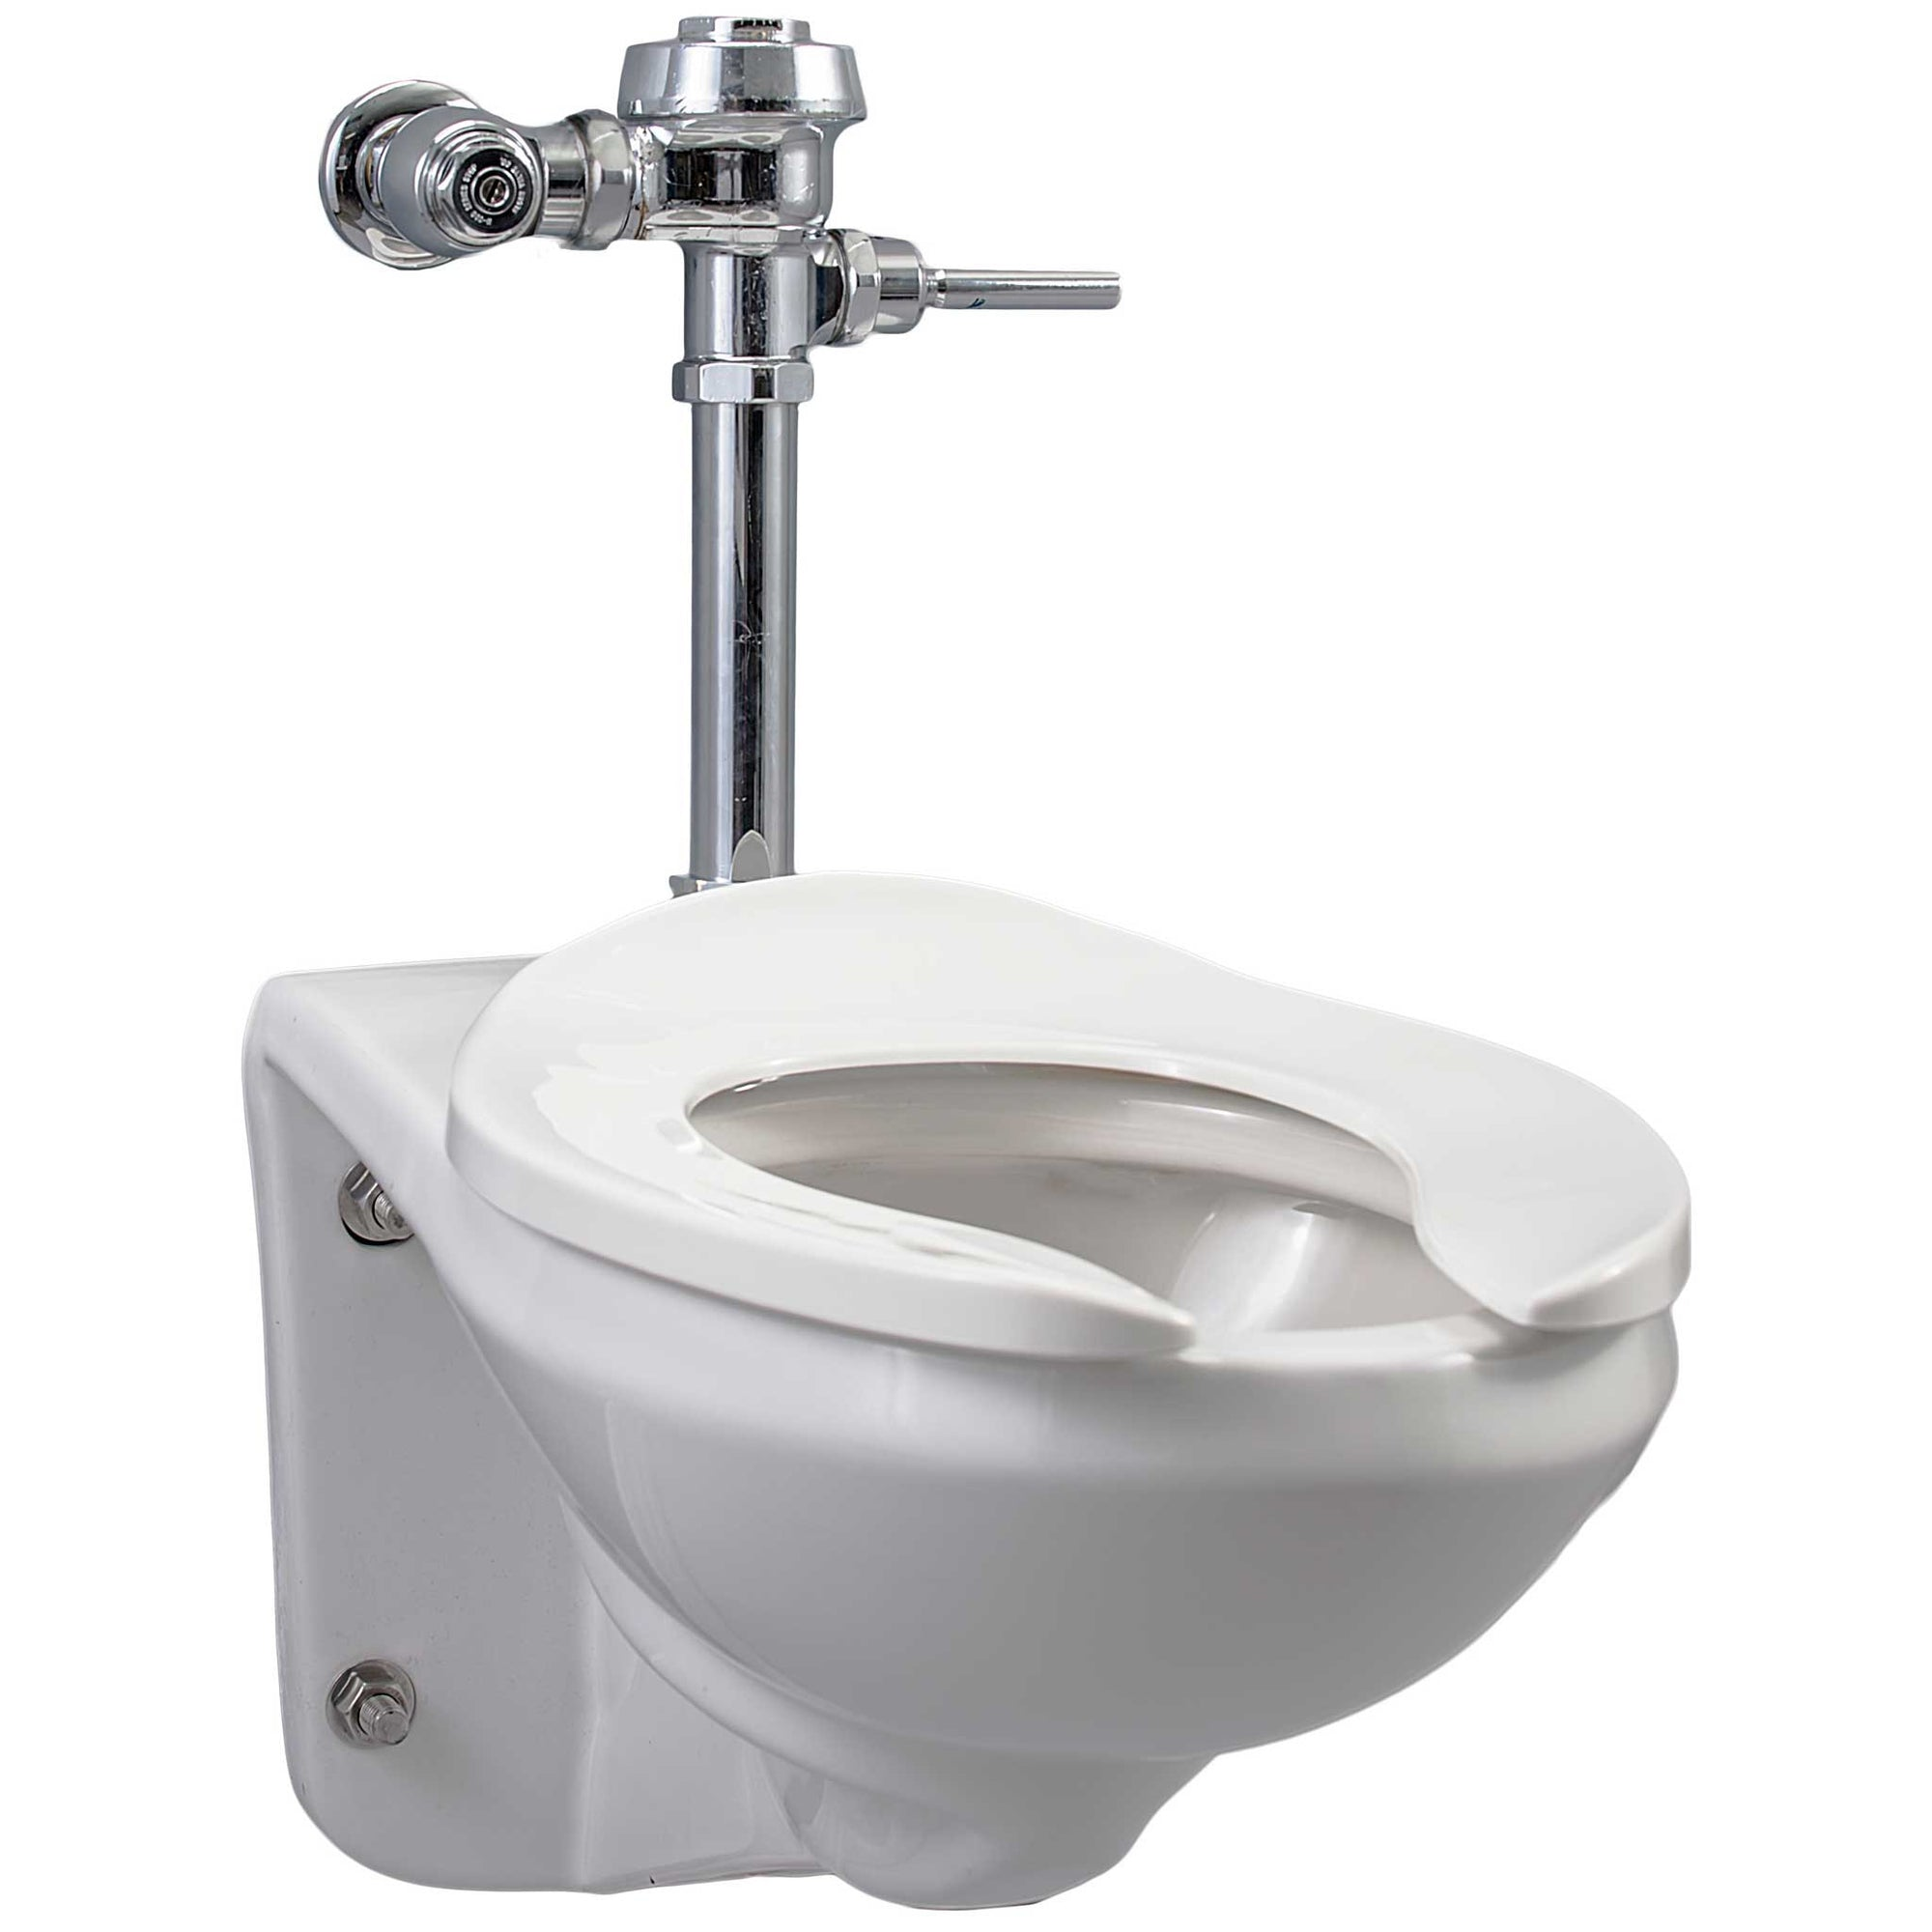 Briggs Commercial Wall Mounted Toilet